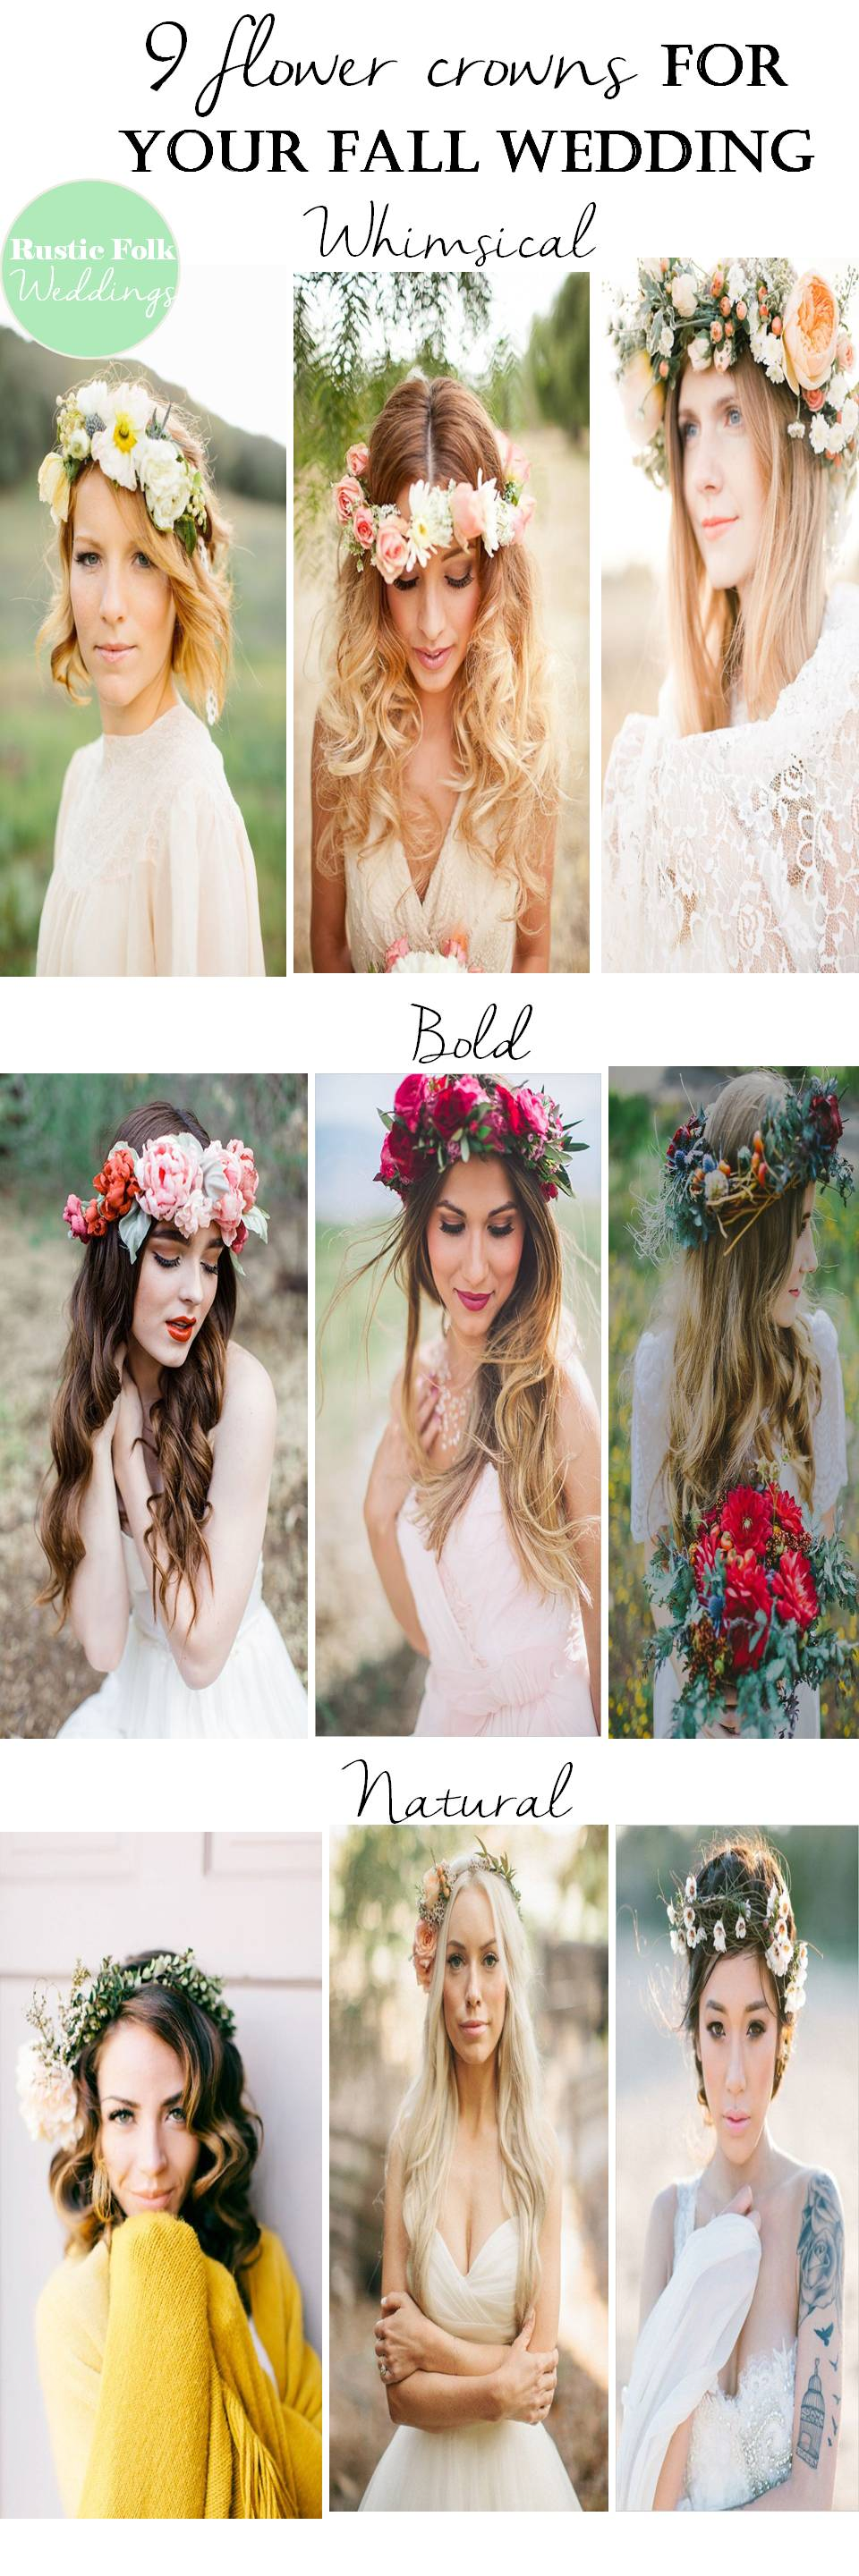 9 flower crowns for your fall wedding rustic folk weddings 9 flower crowns for your fall wedding izmirmasajfo